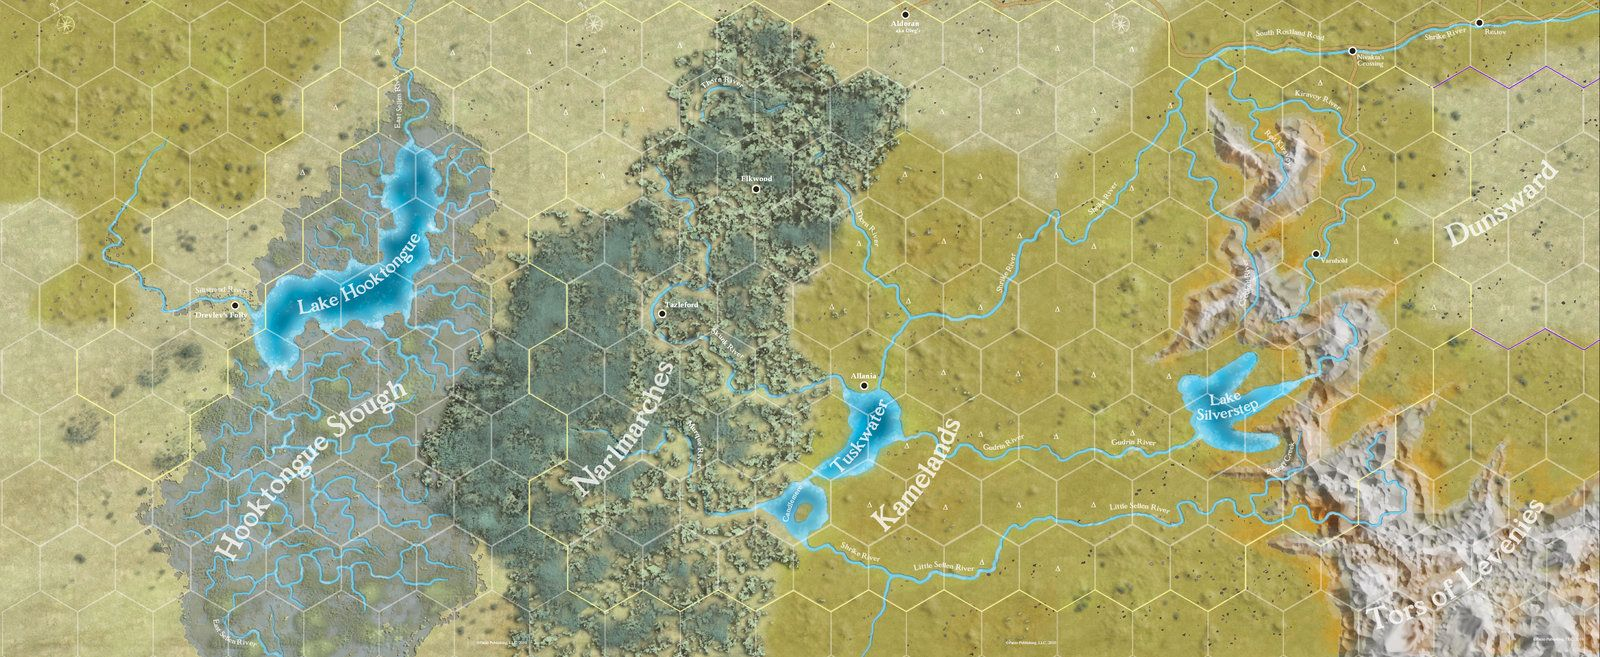 Pin by Draqoun Maguese on D&D Cartography | Map, Cartography, Painting